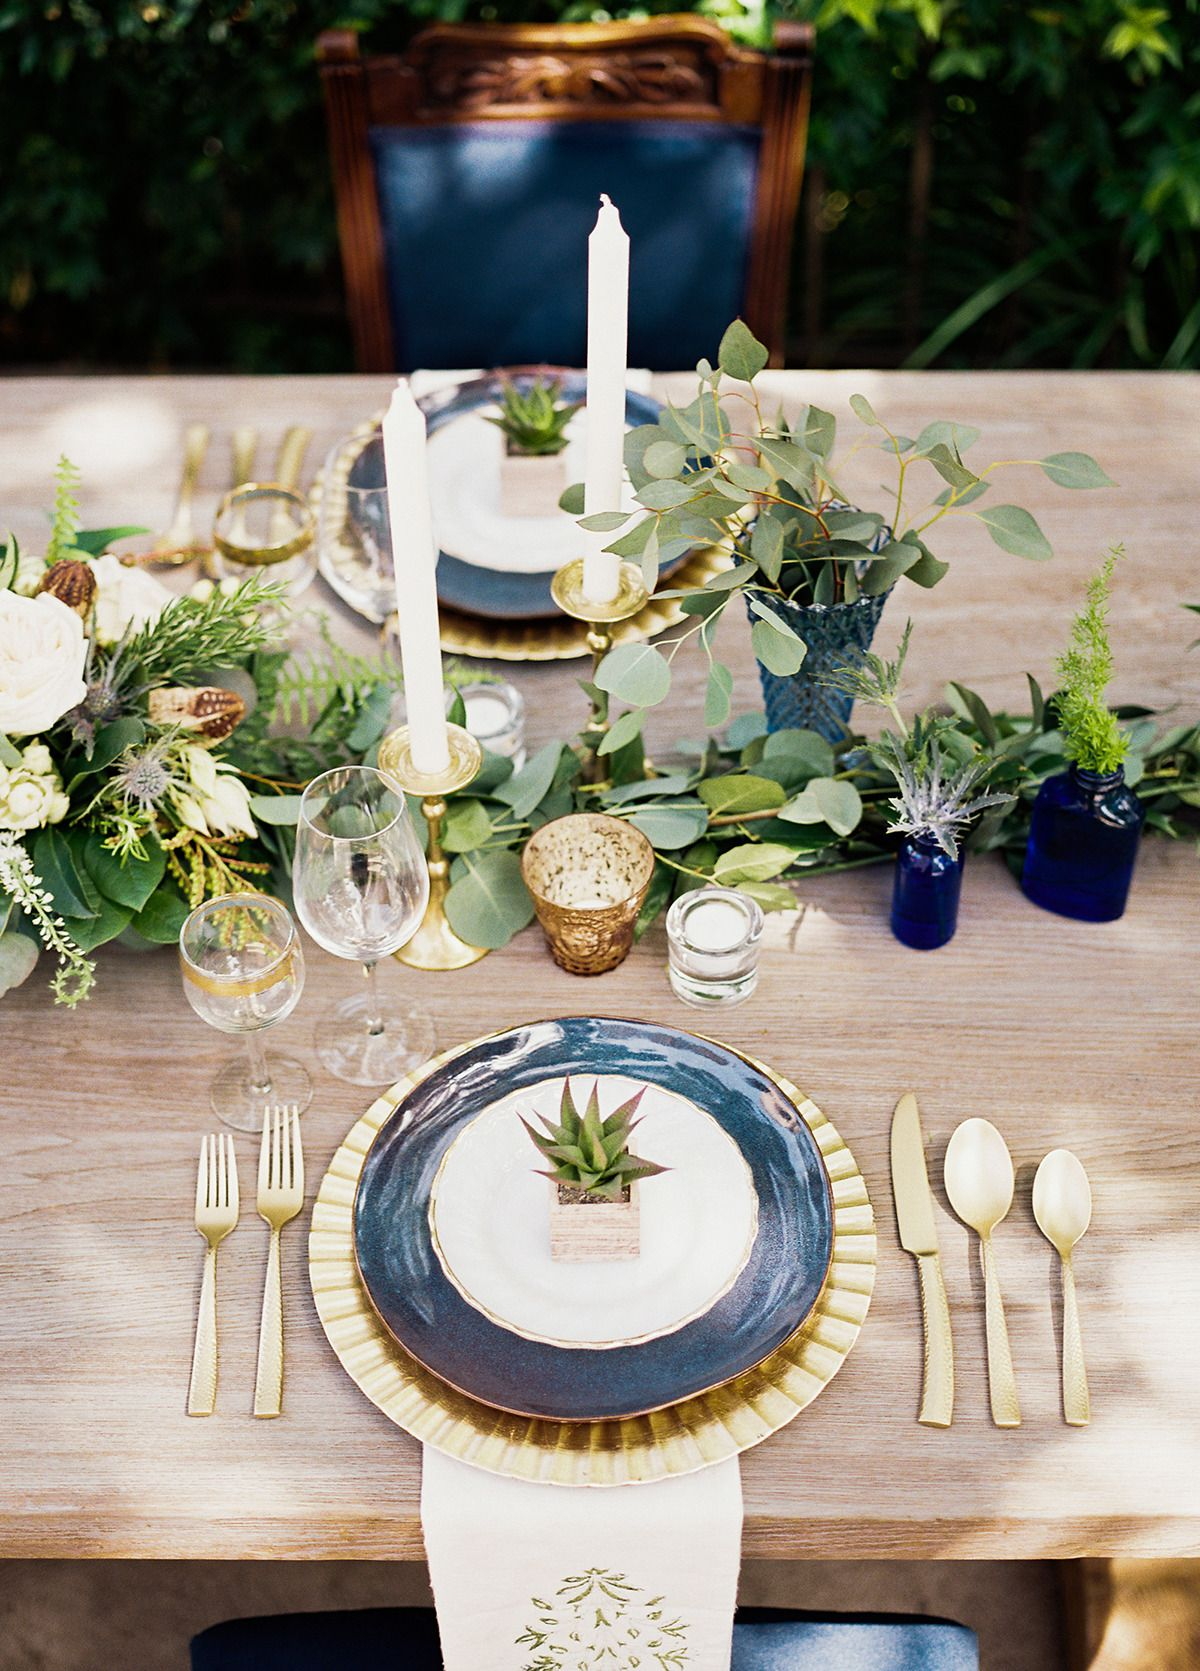 Photography: Ashley Bosnick Photography - ashleybosnick.com Photography: Tracy Enoch Photography - tracyenochphotography.com  Read More: http://www.stylemepretty.com/2014/10/28/romantic-navy-italian-inspired-wedding/